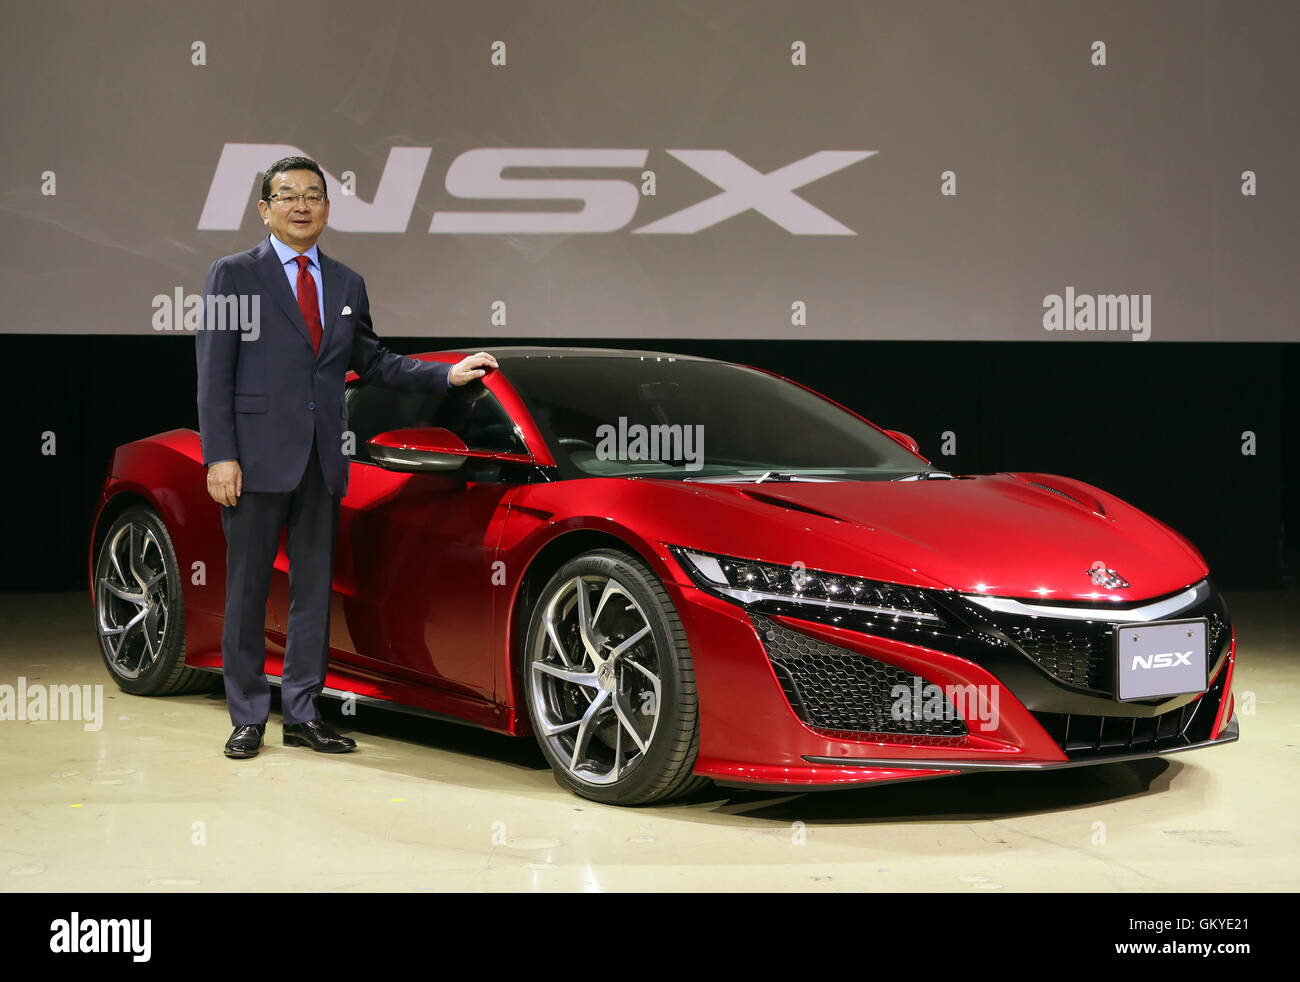 Japanese Automobile Giant Honda Motor President Takahiro Hachigo Introduces The Companys Sports Car NSX Fully Redesigned For First Time In 26 Years